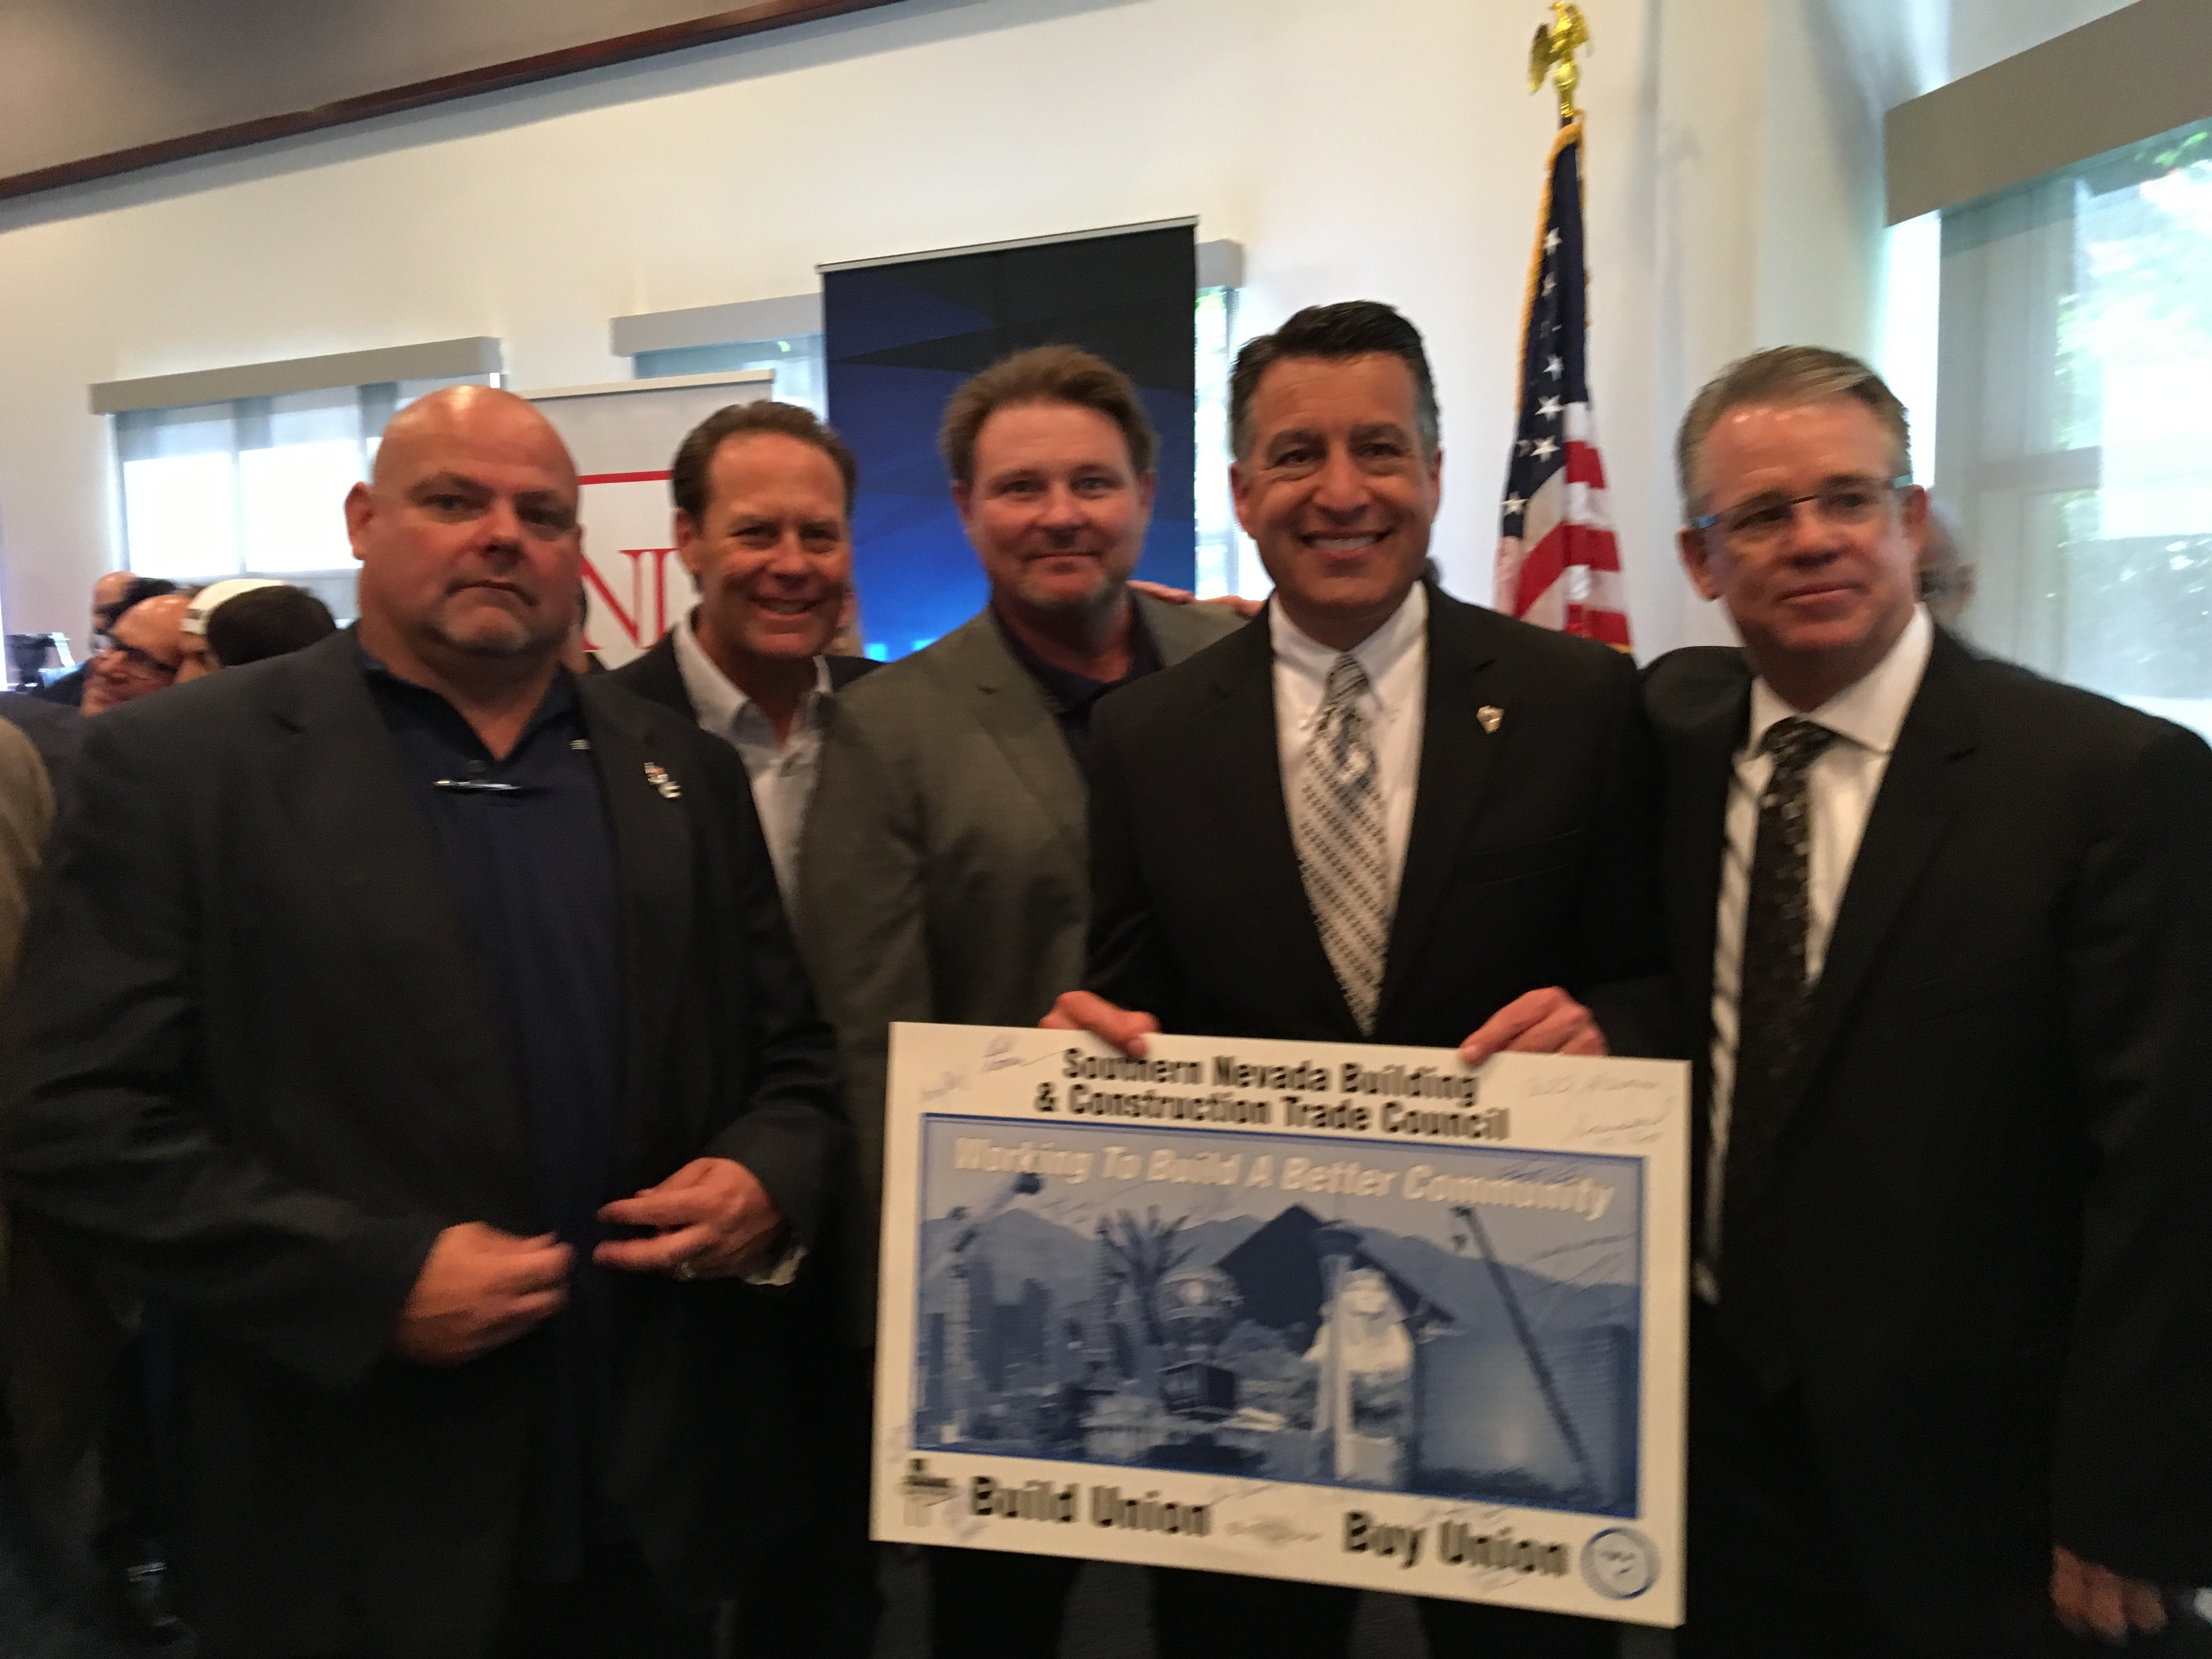 DC 15 Business Manager/Secretary Treasurer John Smirk, Bill Stanley from the Southern Nevada Building Trades, and Governor Bryan Sandoval.